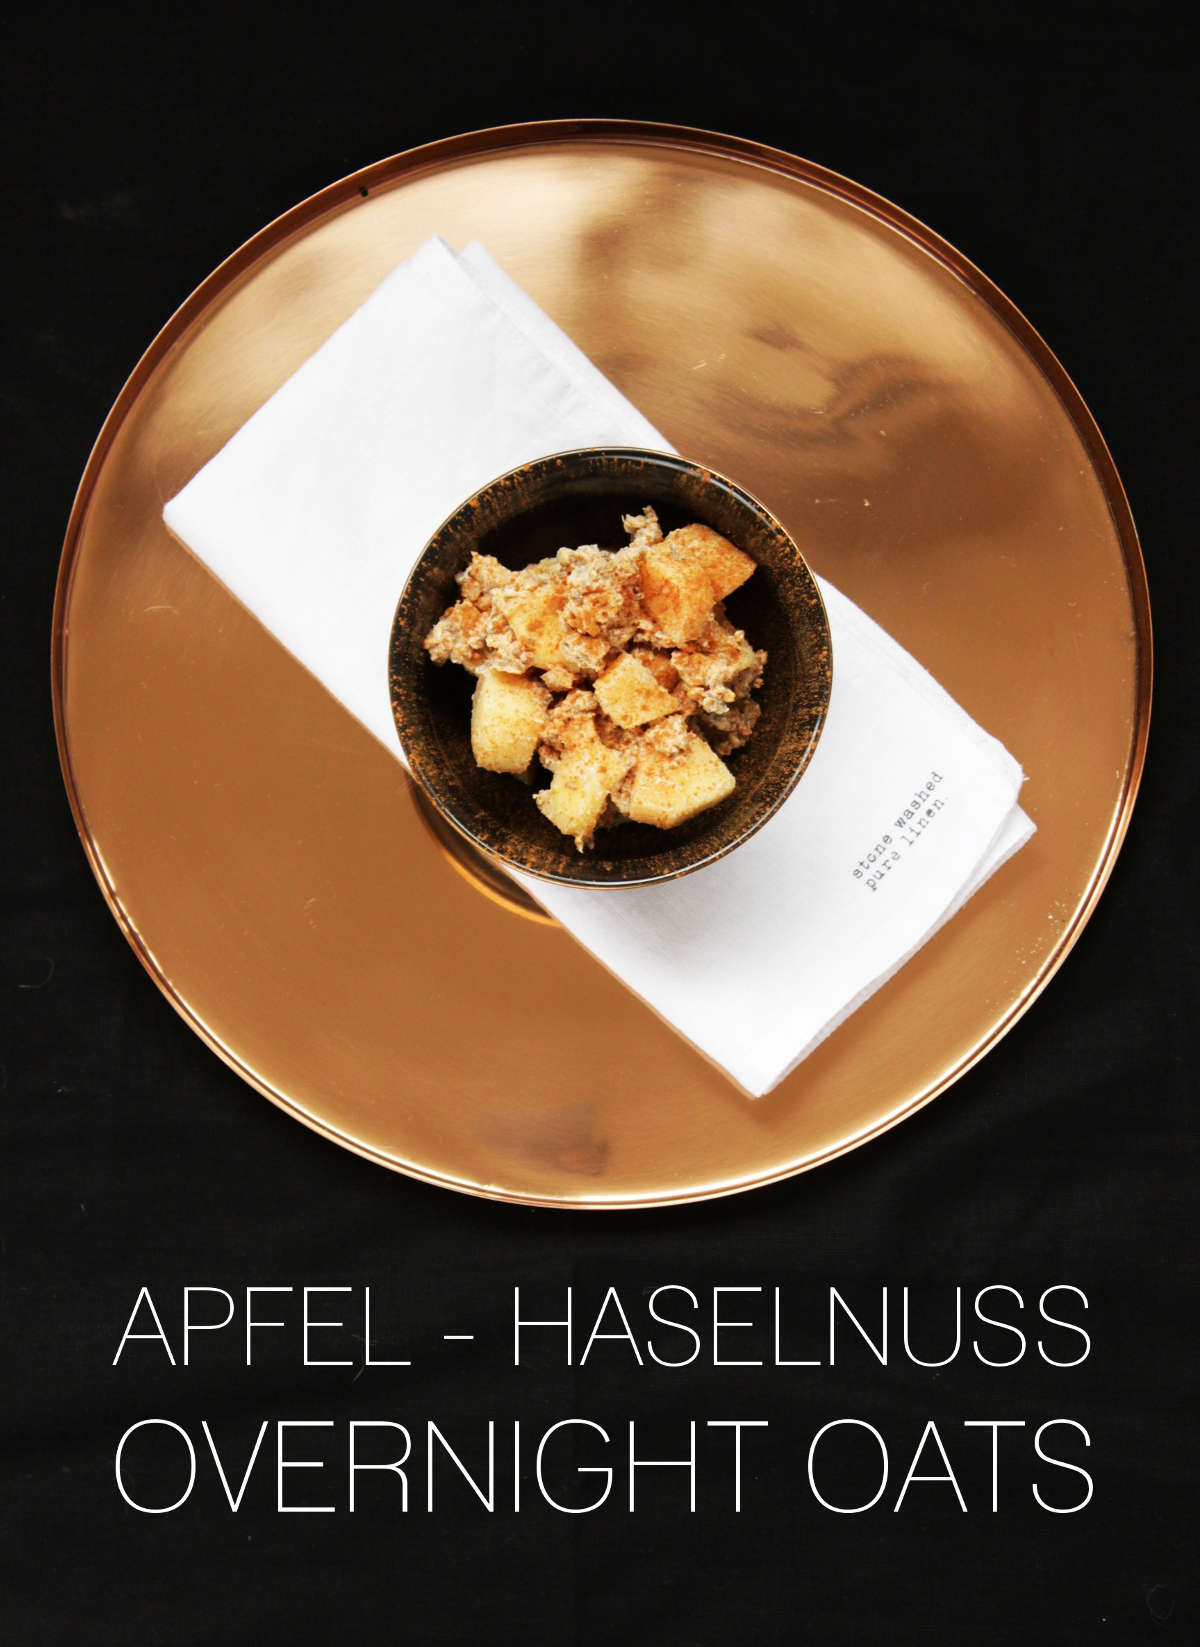 Apfel Haselnuss Overnight Oats